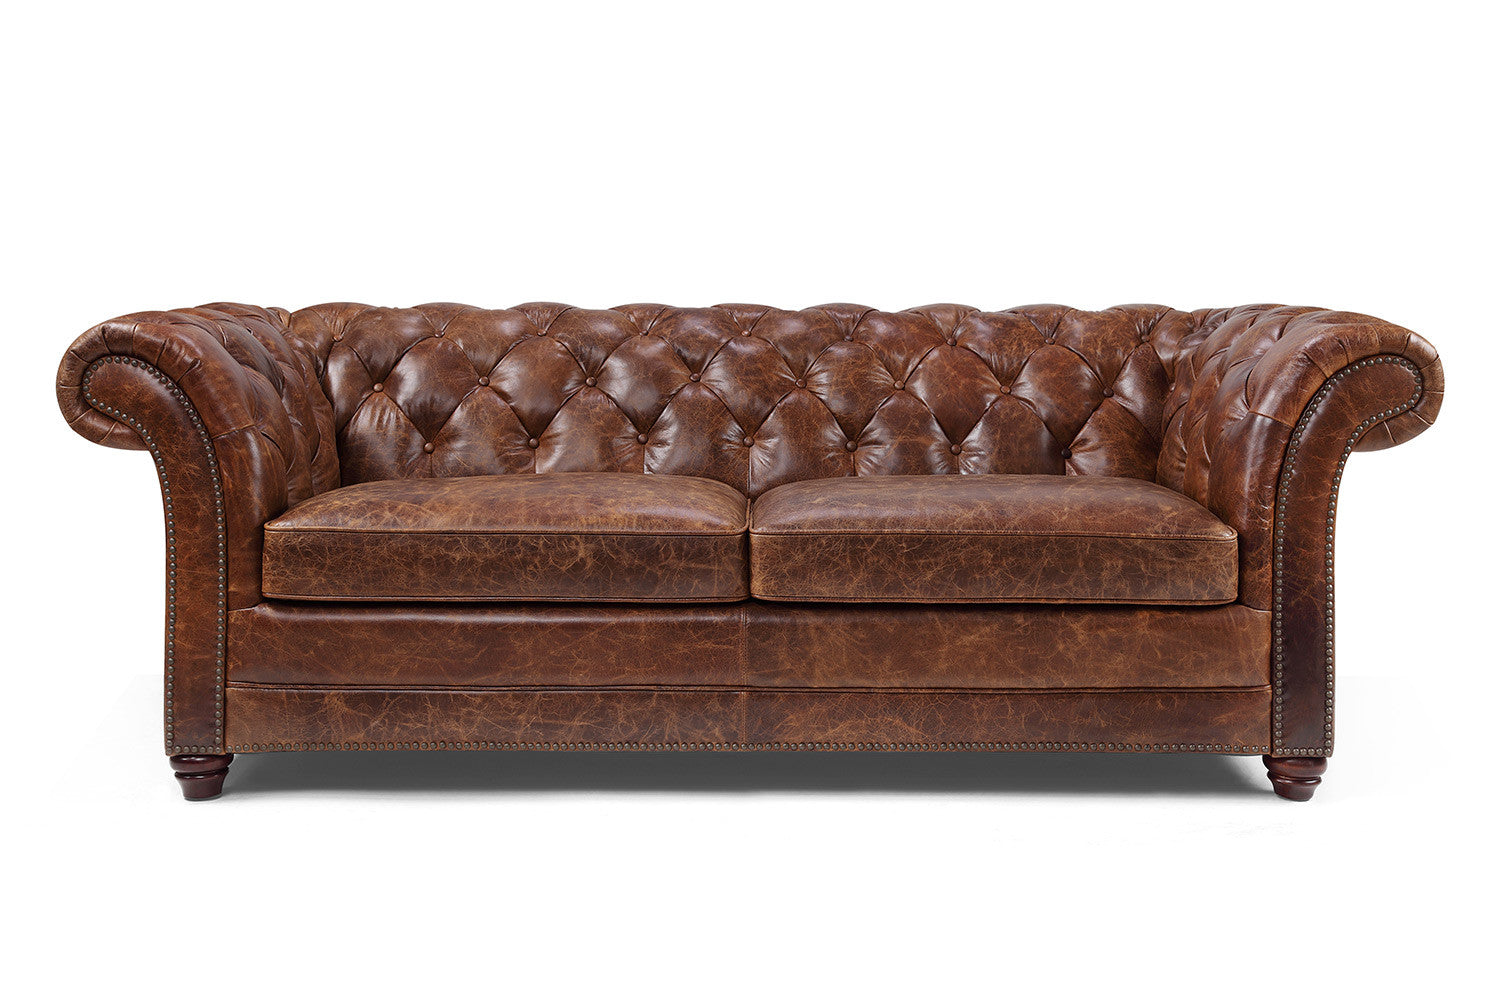 Canap chesterfield en cuir westminster rose moore - Canape chesterfield but ...